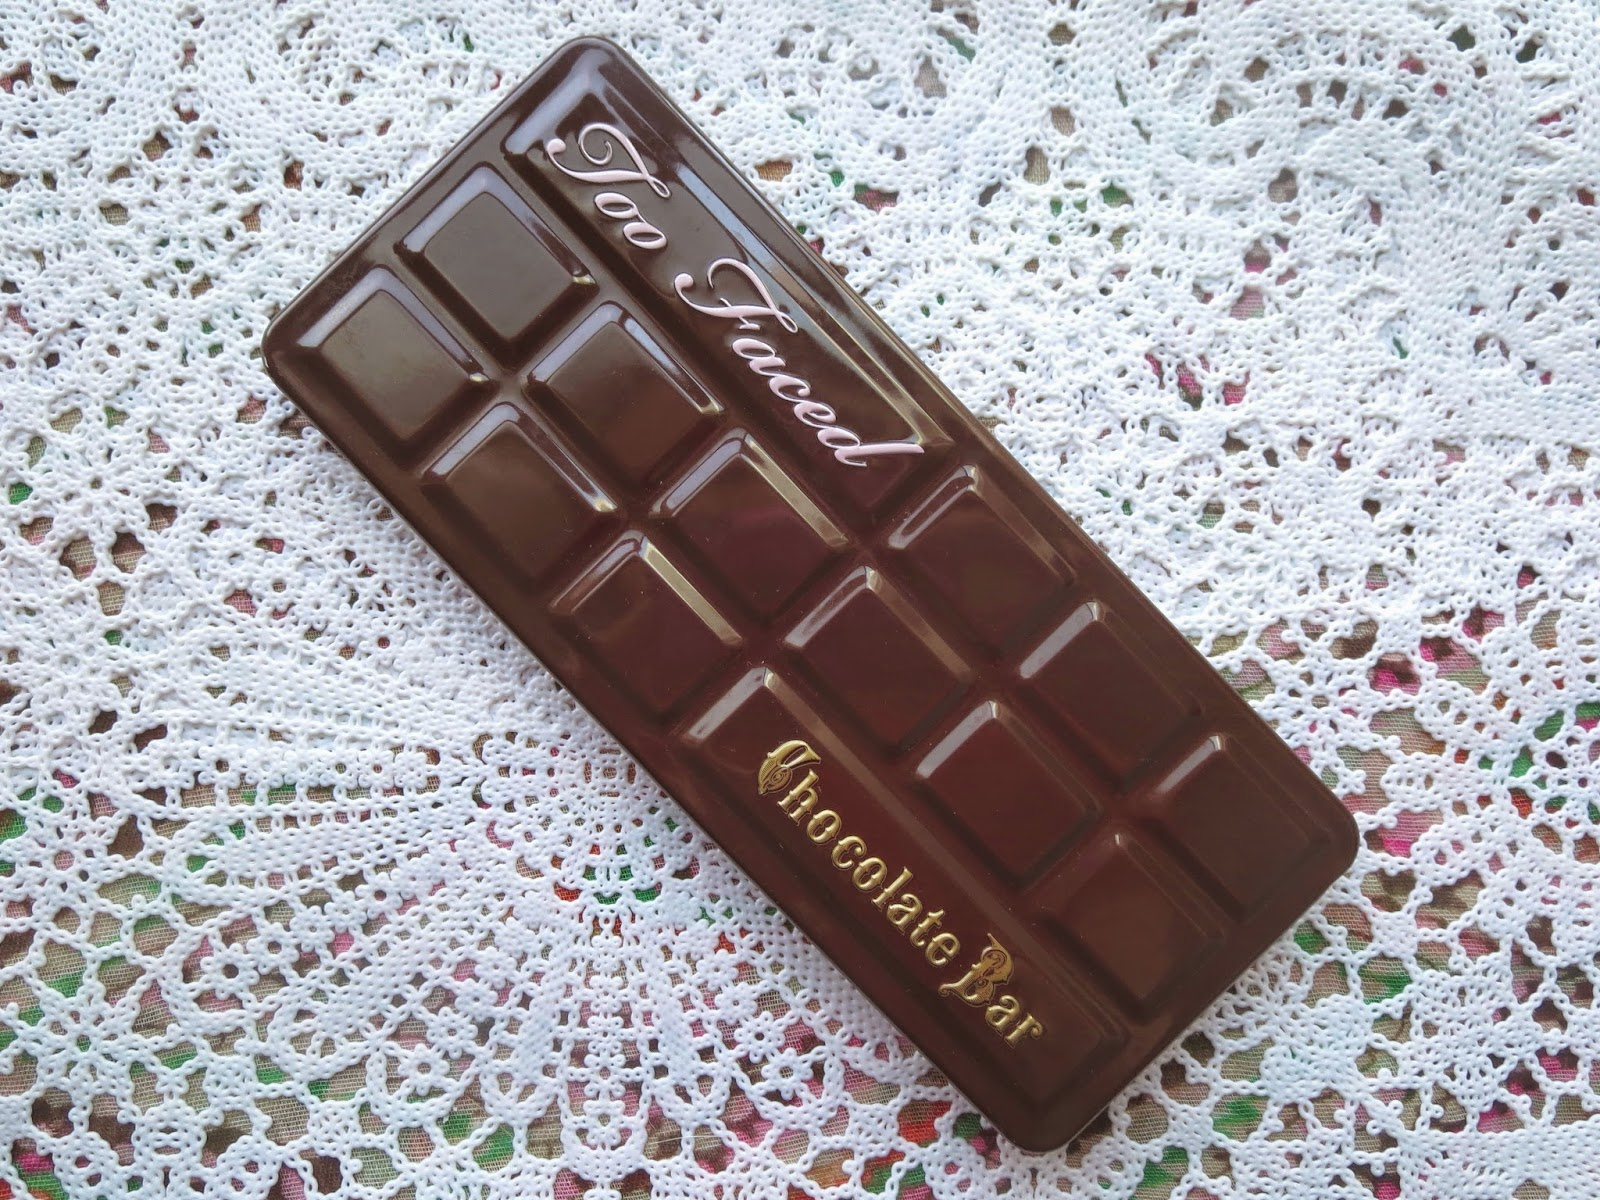 a picture of Too Faced Chocolate Bar